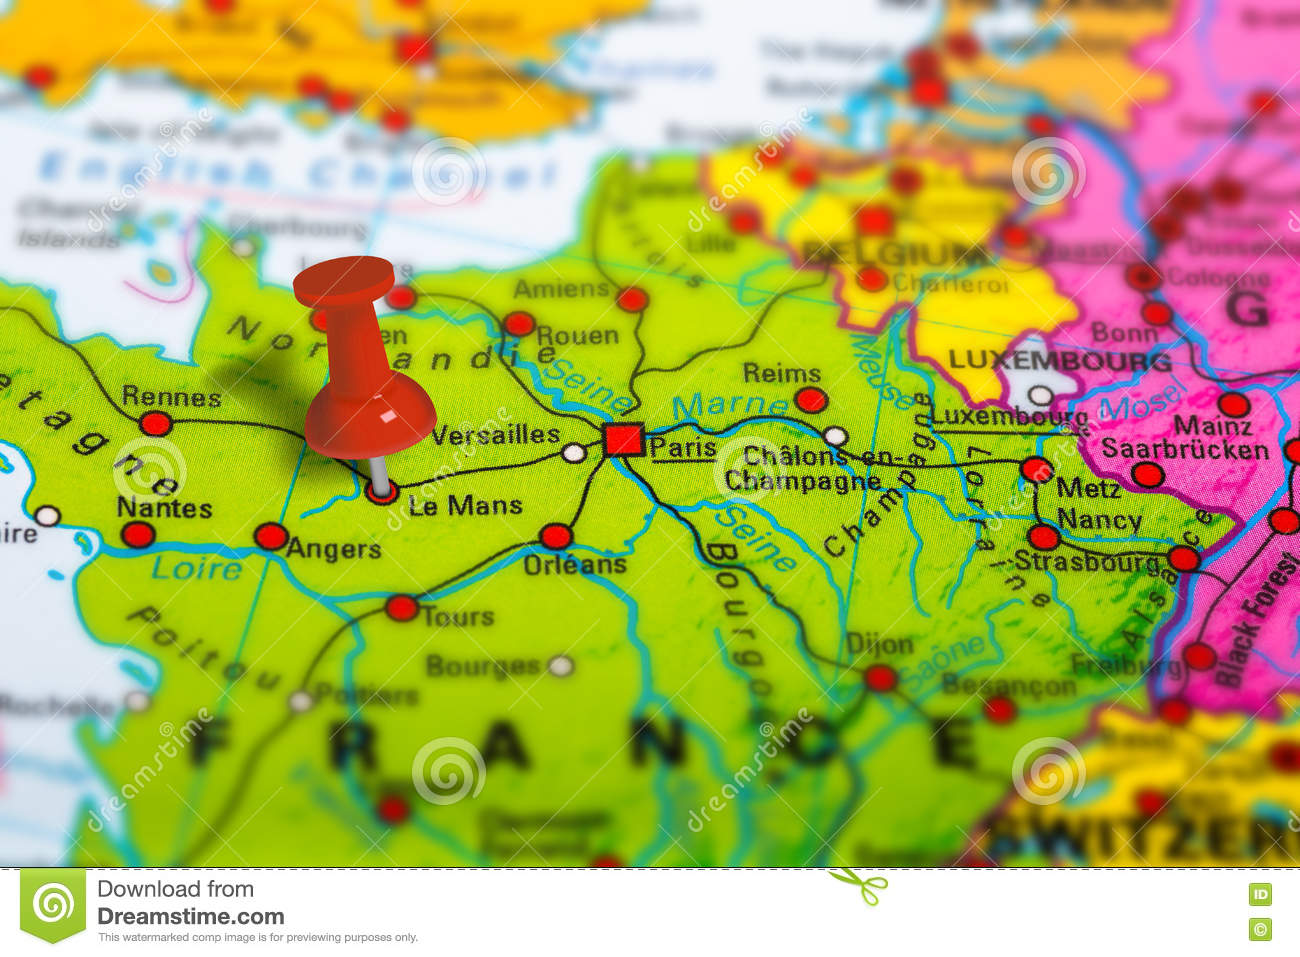 Geographical Map Of France.Le Mans France Map Stock Photo Image Of France Geographical 80951916